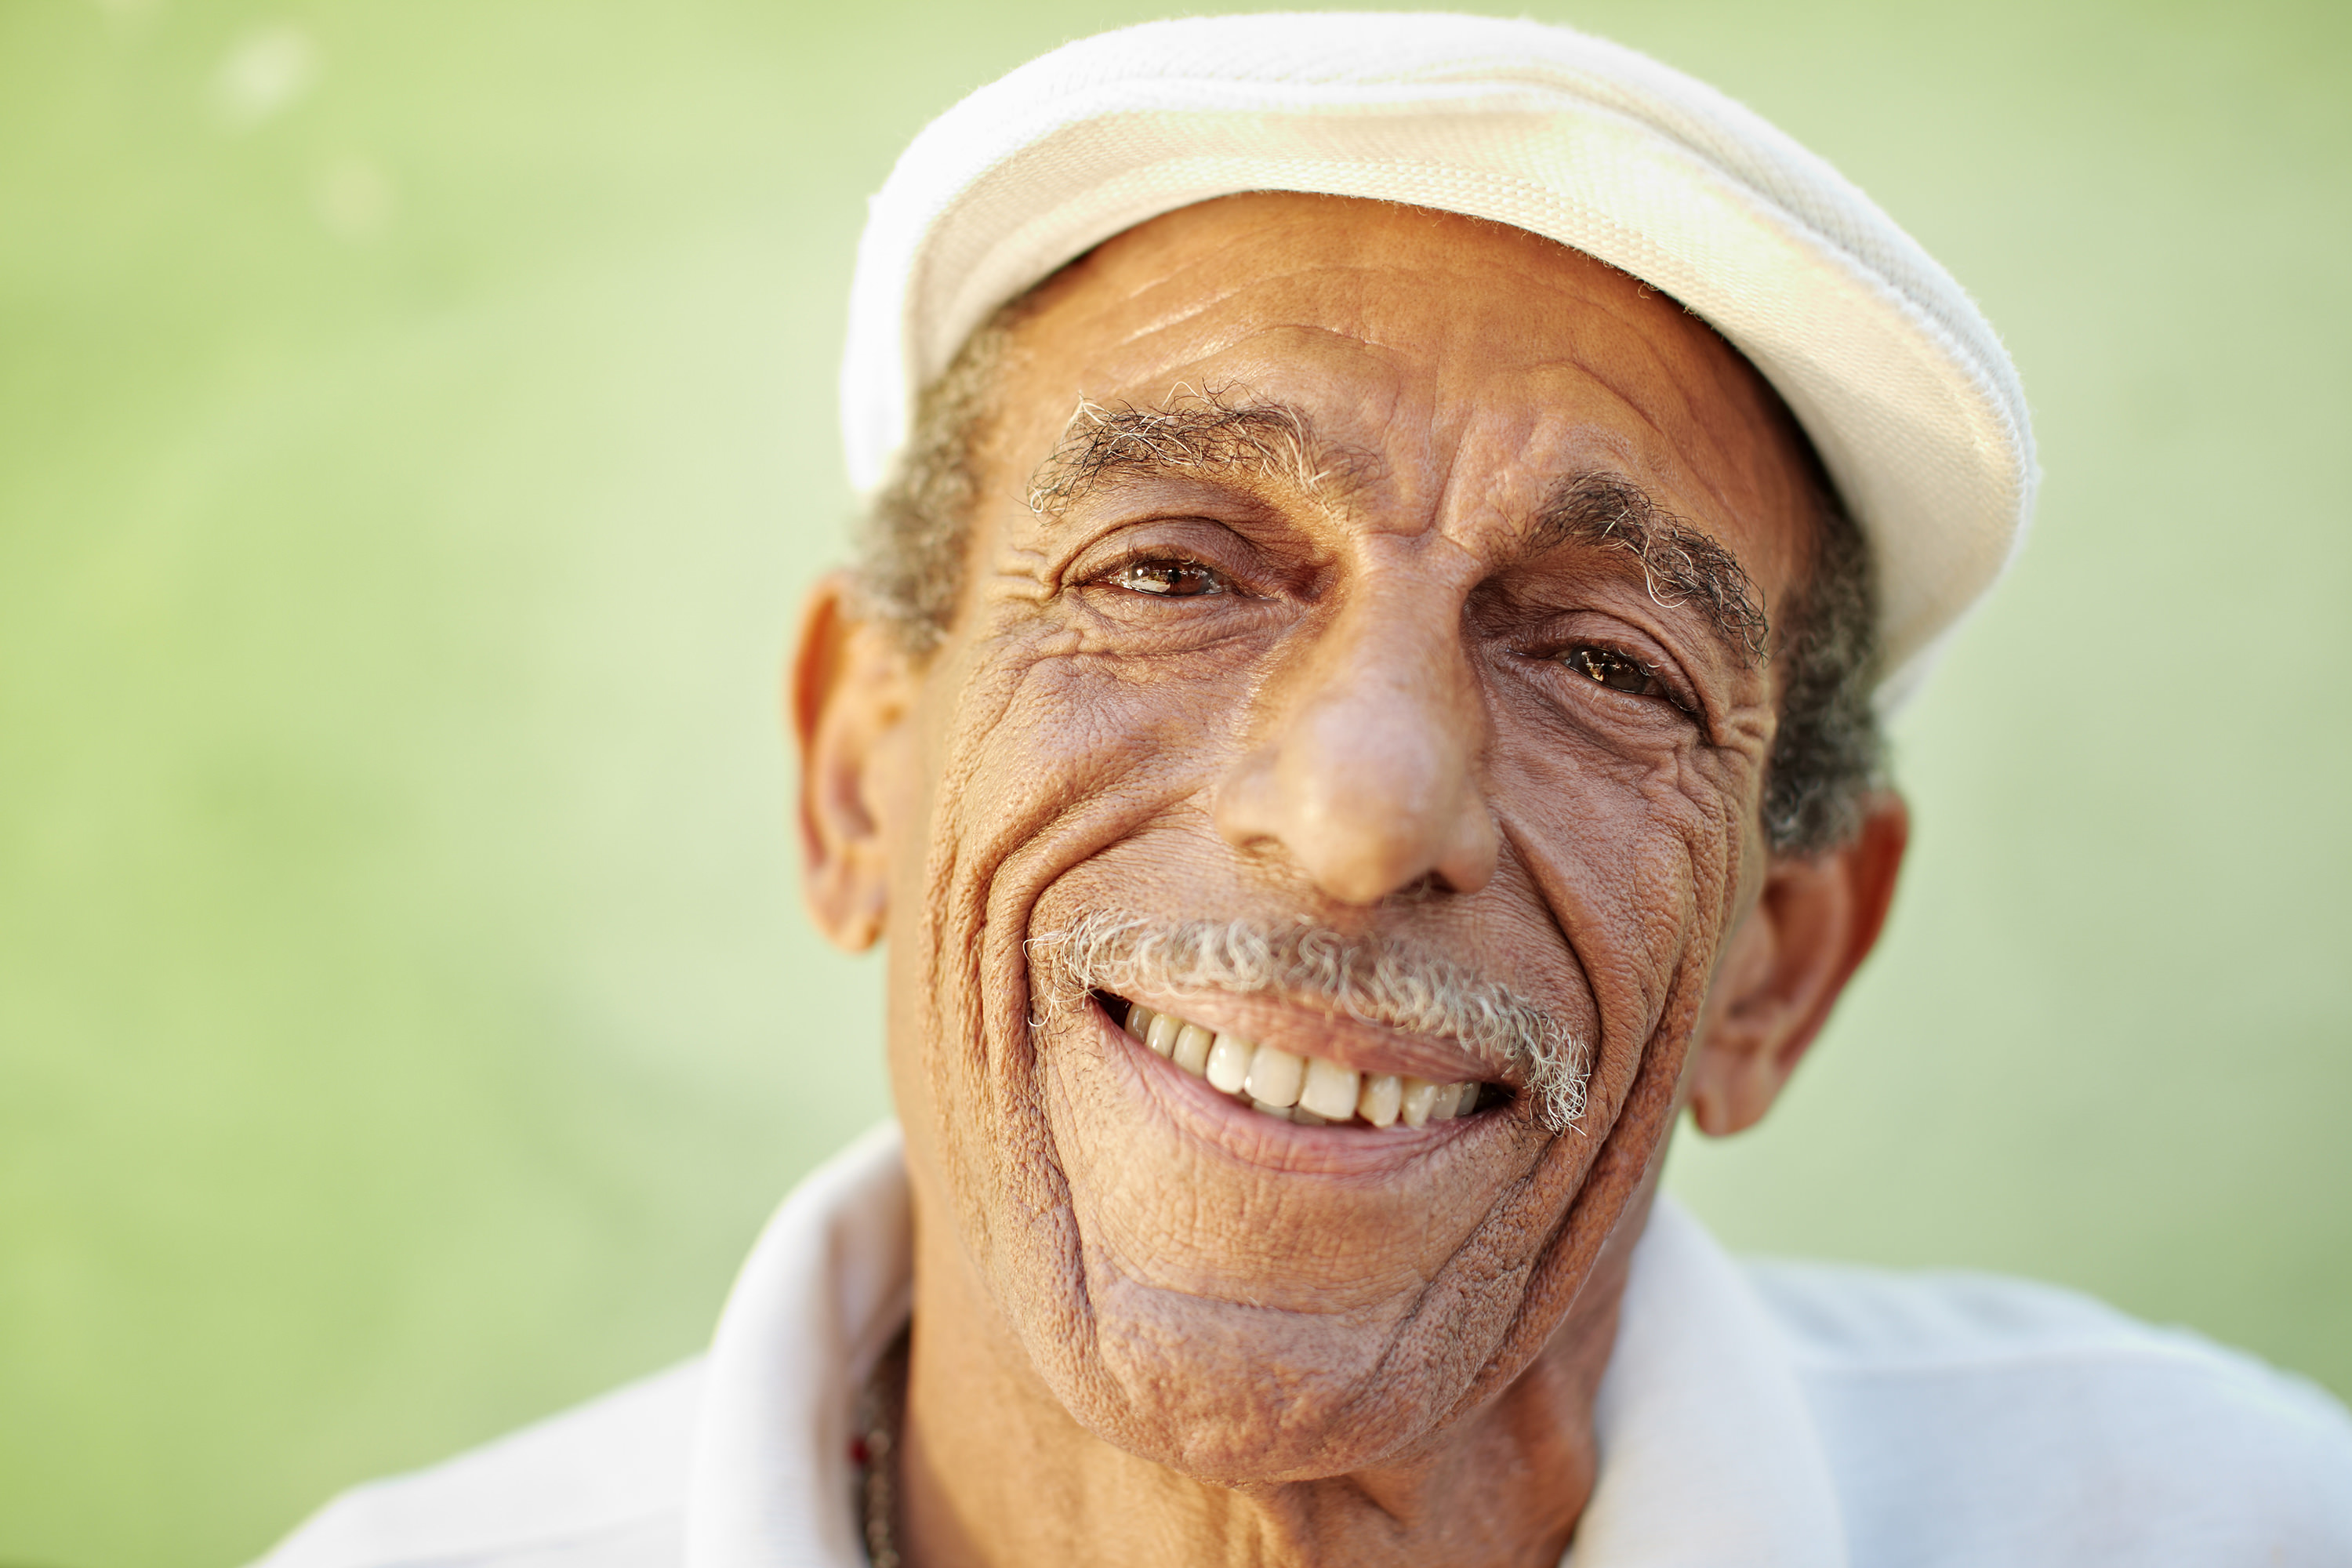 older man with bunnet smiling